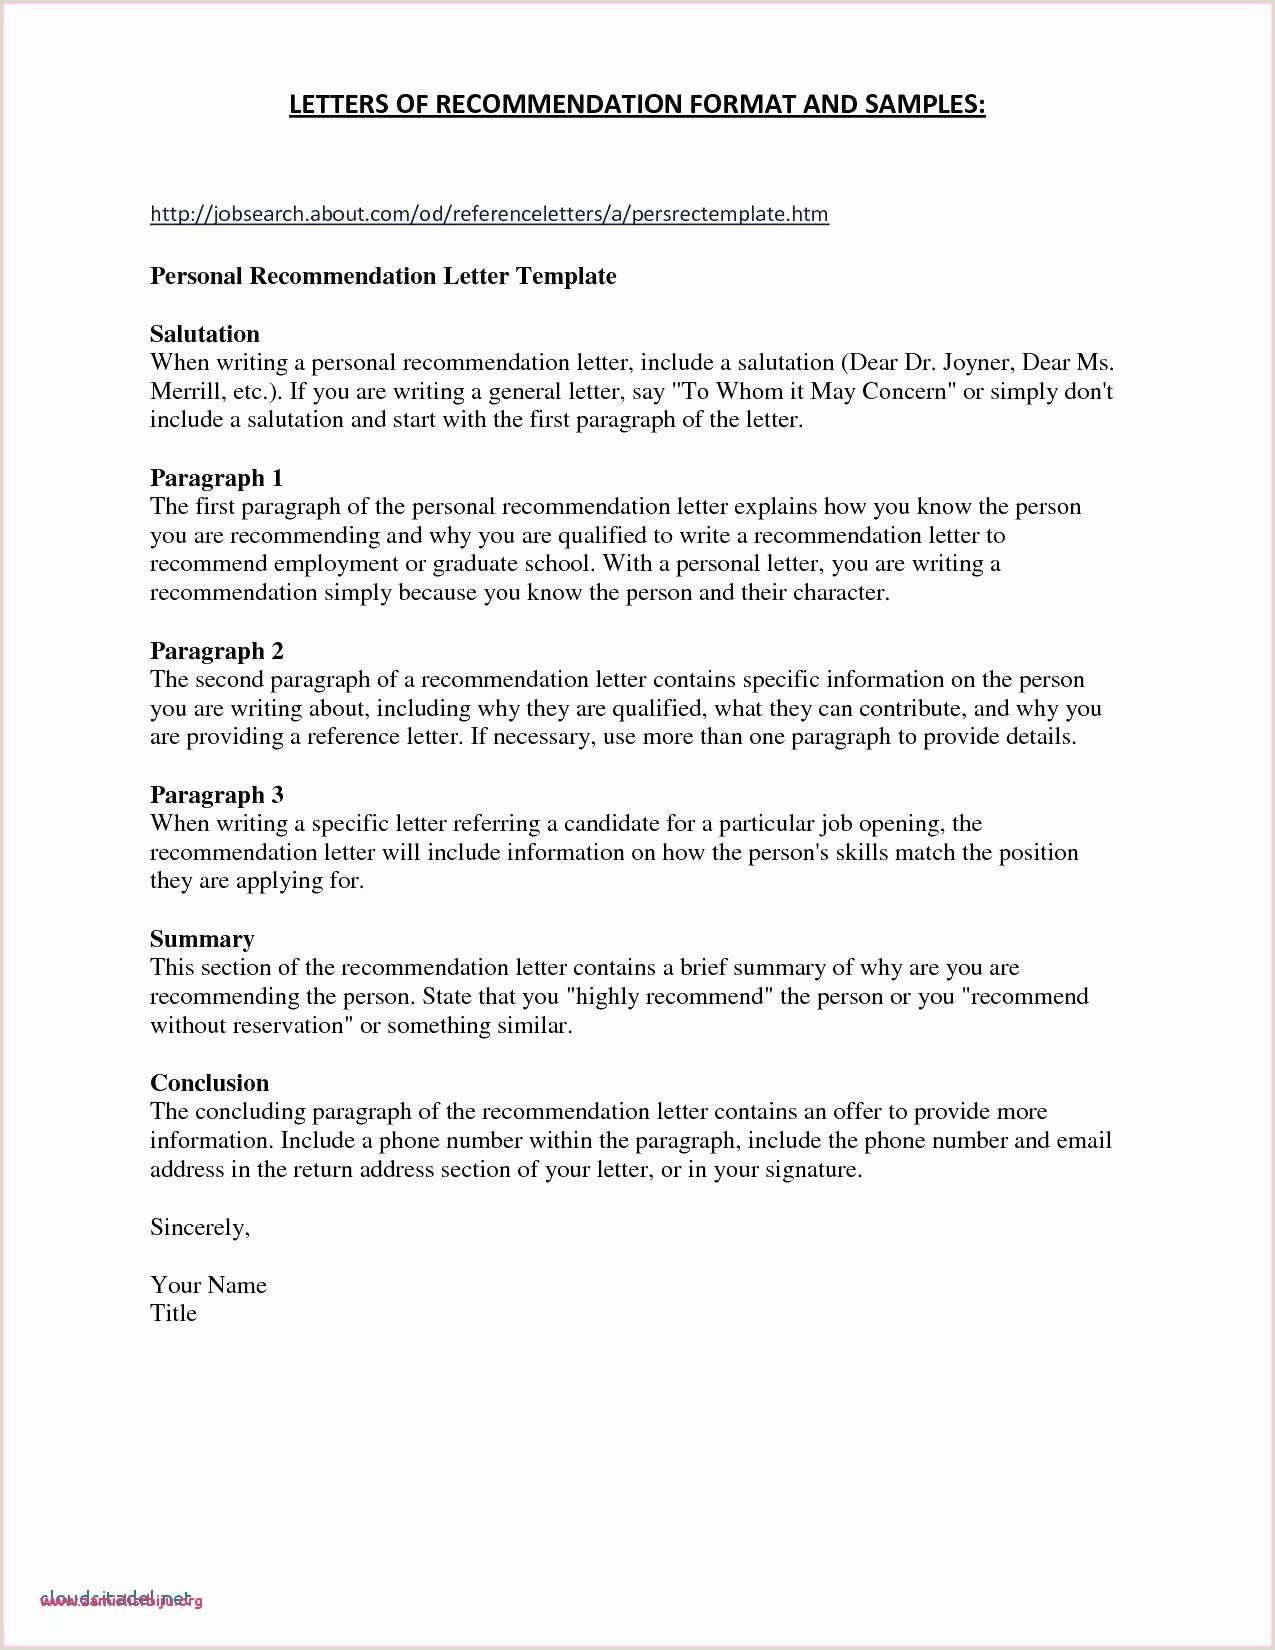 Biodata Format Job Application Filename Sample Resume For